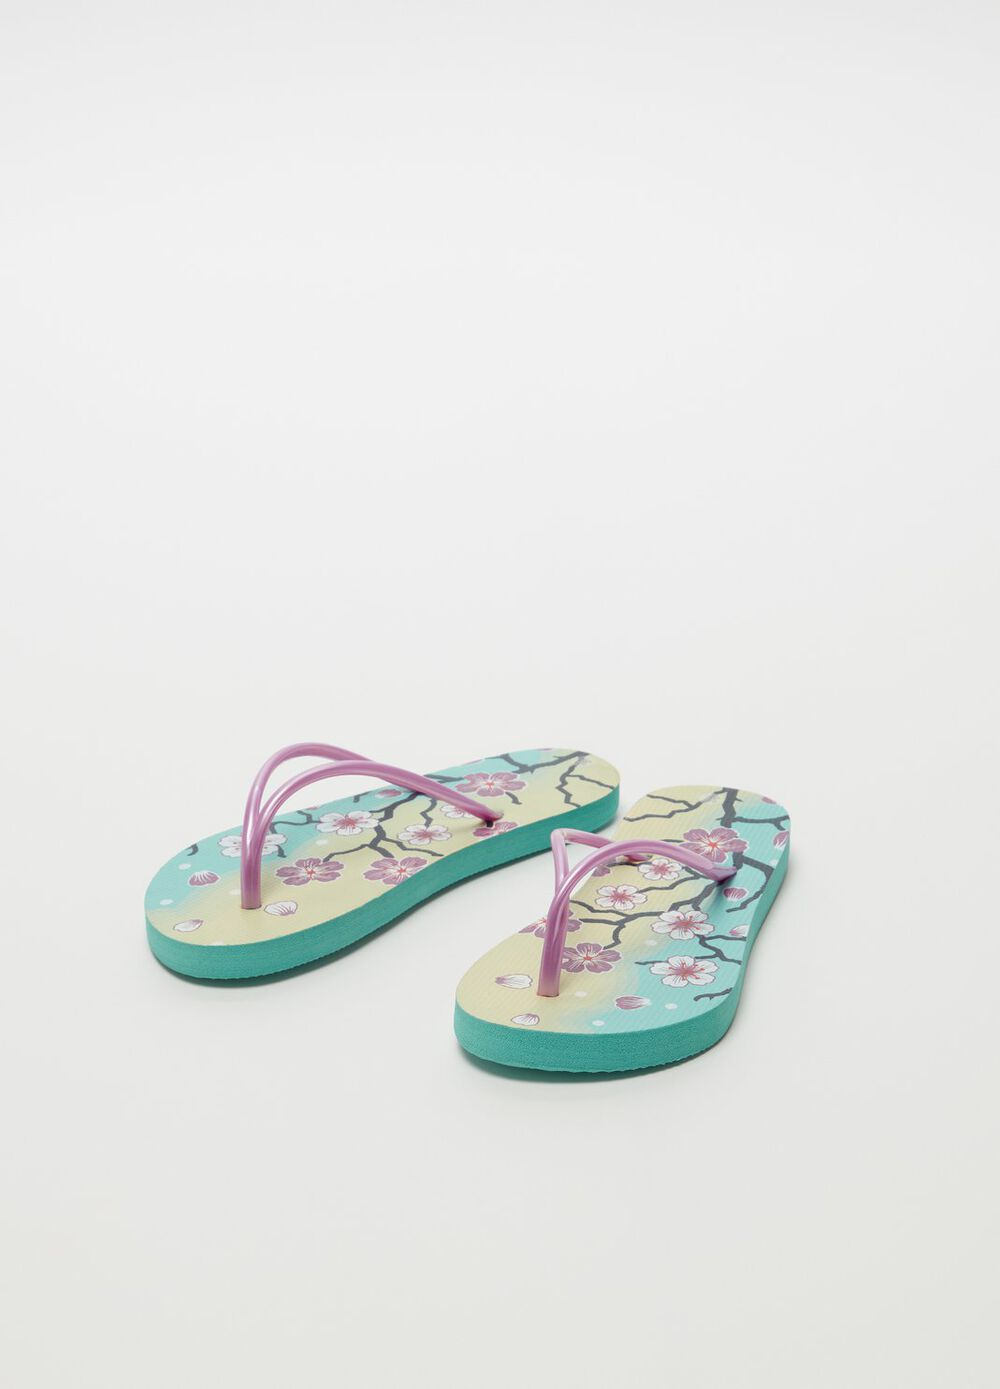 Thong sandals with floral pattern and flat heel